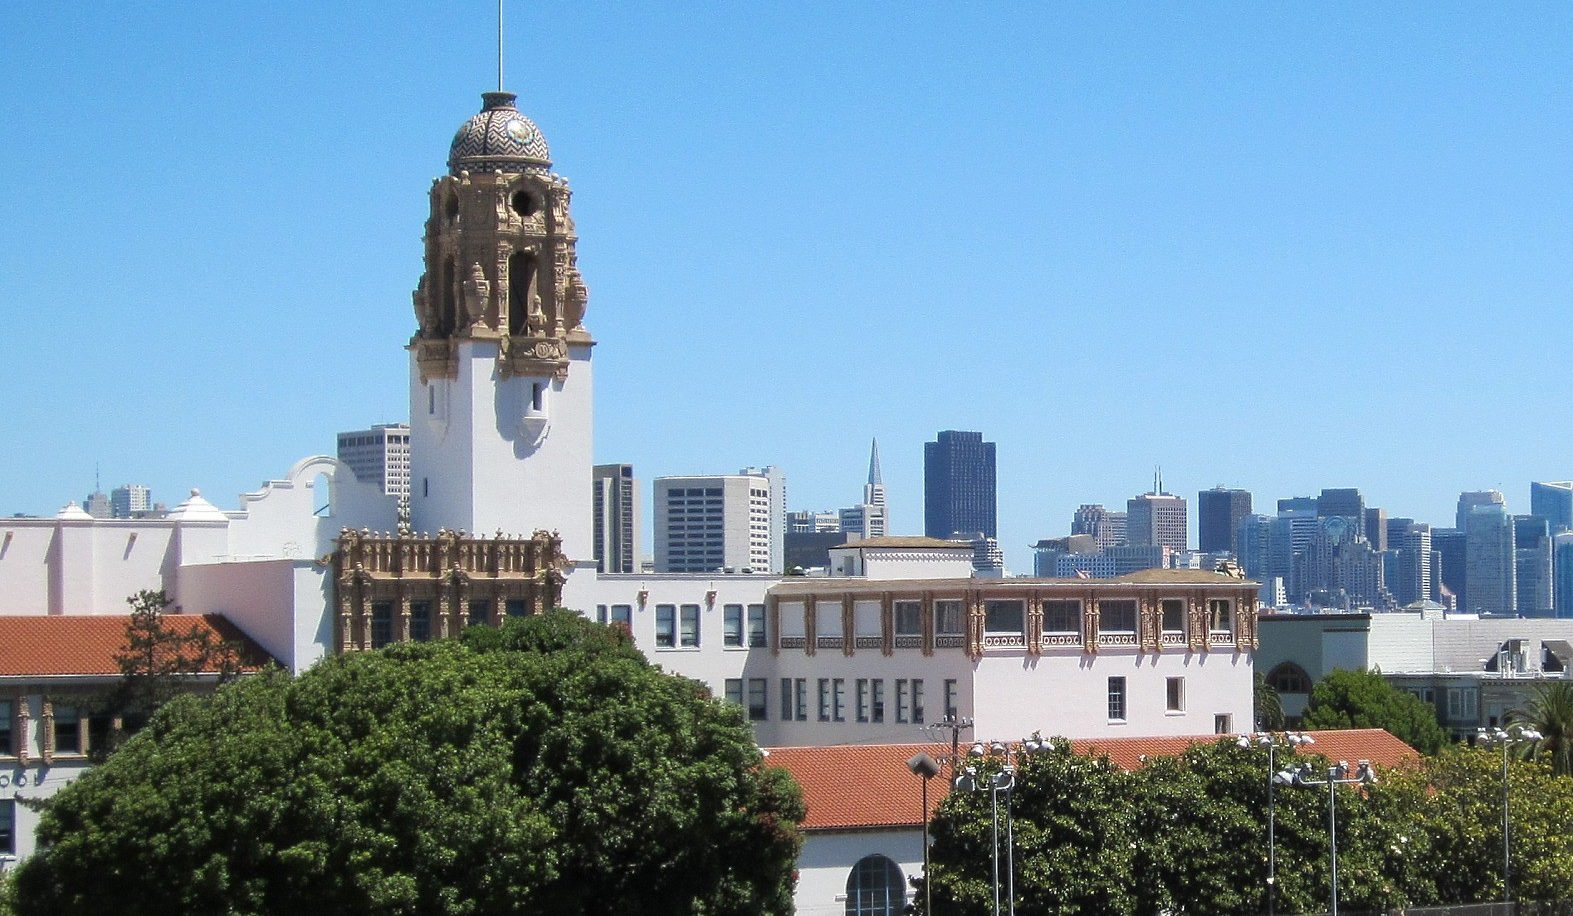 A view of Mission High School from Dolores Park. (Photo/Flickr-Don Barrett CC BY-NC-ND 2.0)